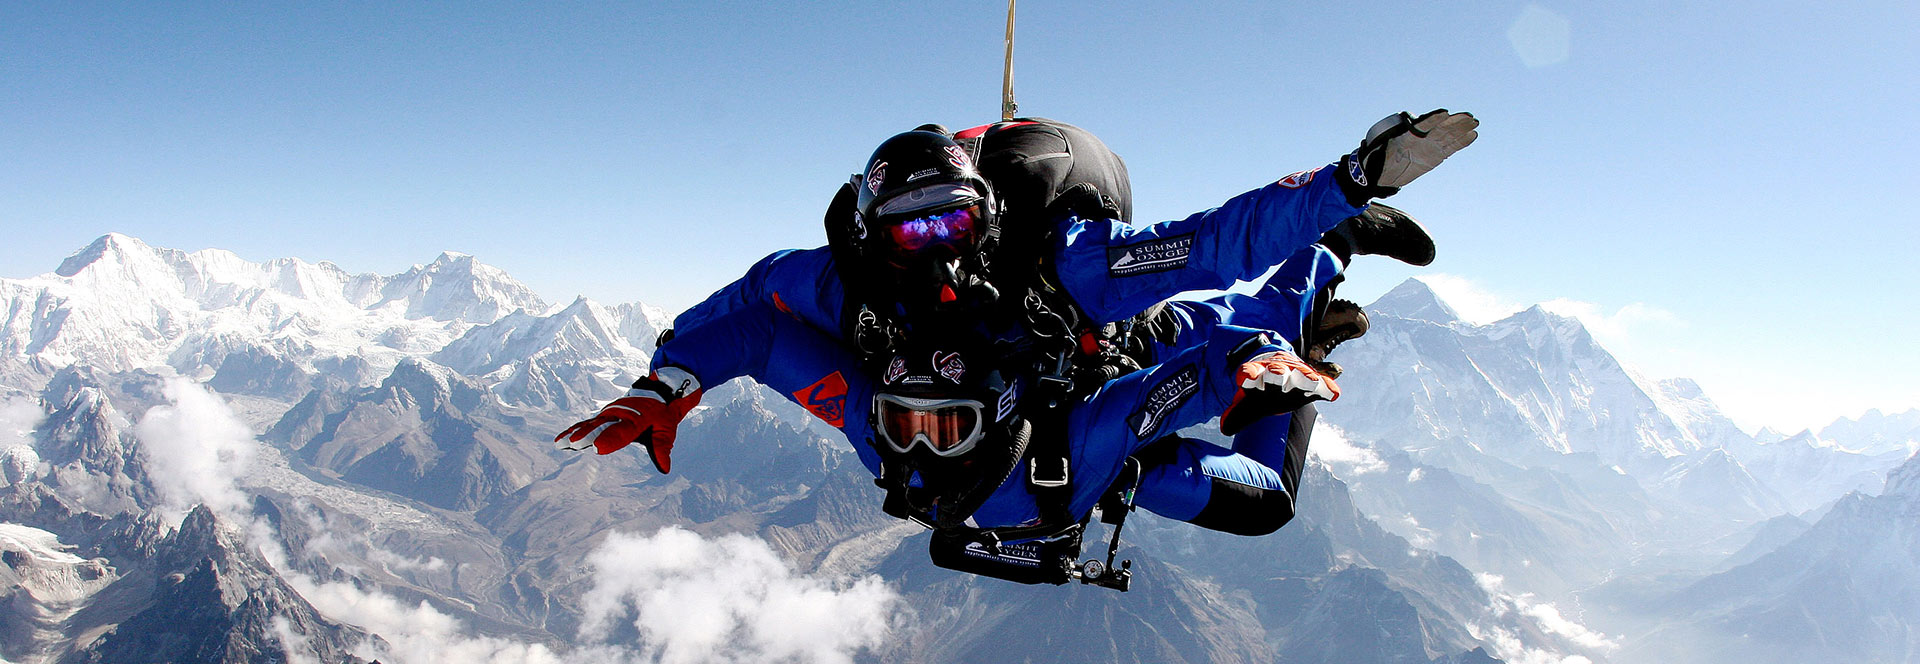 Designed for high altitude skydivers